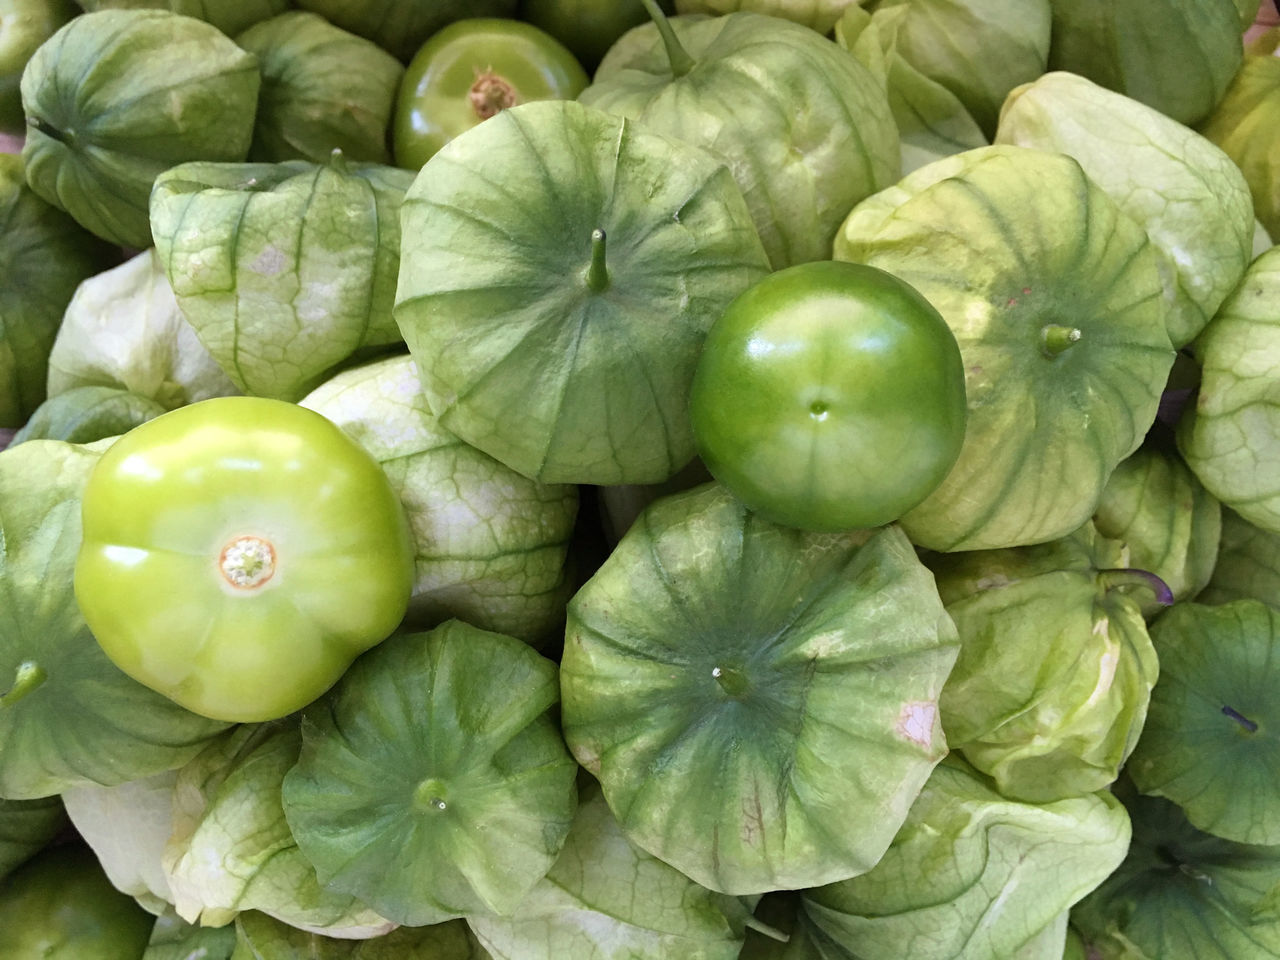 Close-up Food Food And Drink Freshness Freshness Green Green Tomatoes Healthy Eating Healthy Eating; Ingredient Mexican Cuisine Mexican Food Mexican Husk Tomato No People Raw Food Ripe Tomate Tomatillo Tomatillos Tomato Tomatoes Vegetable